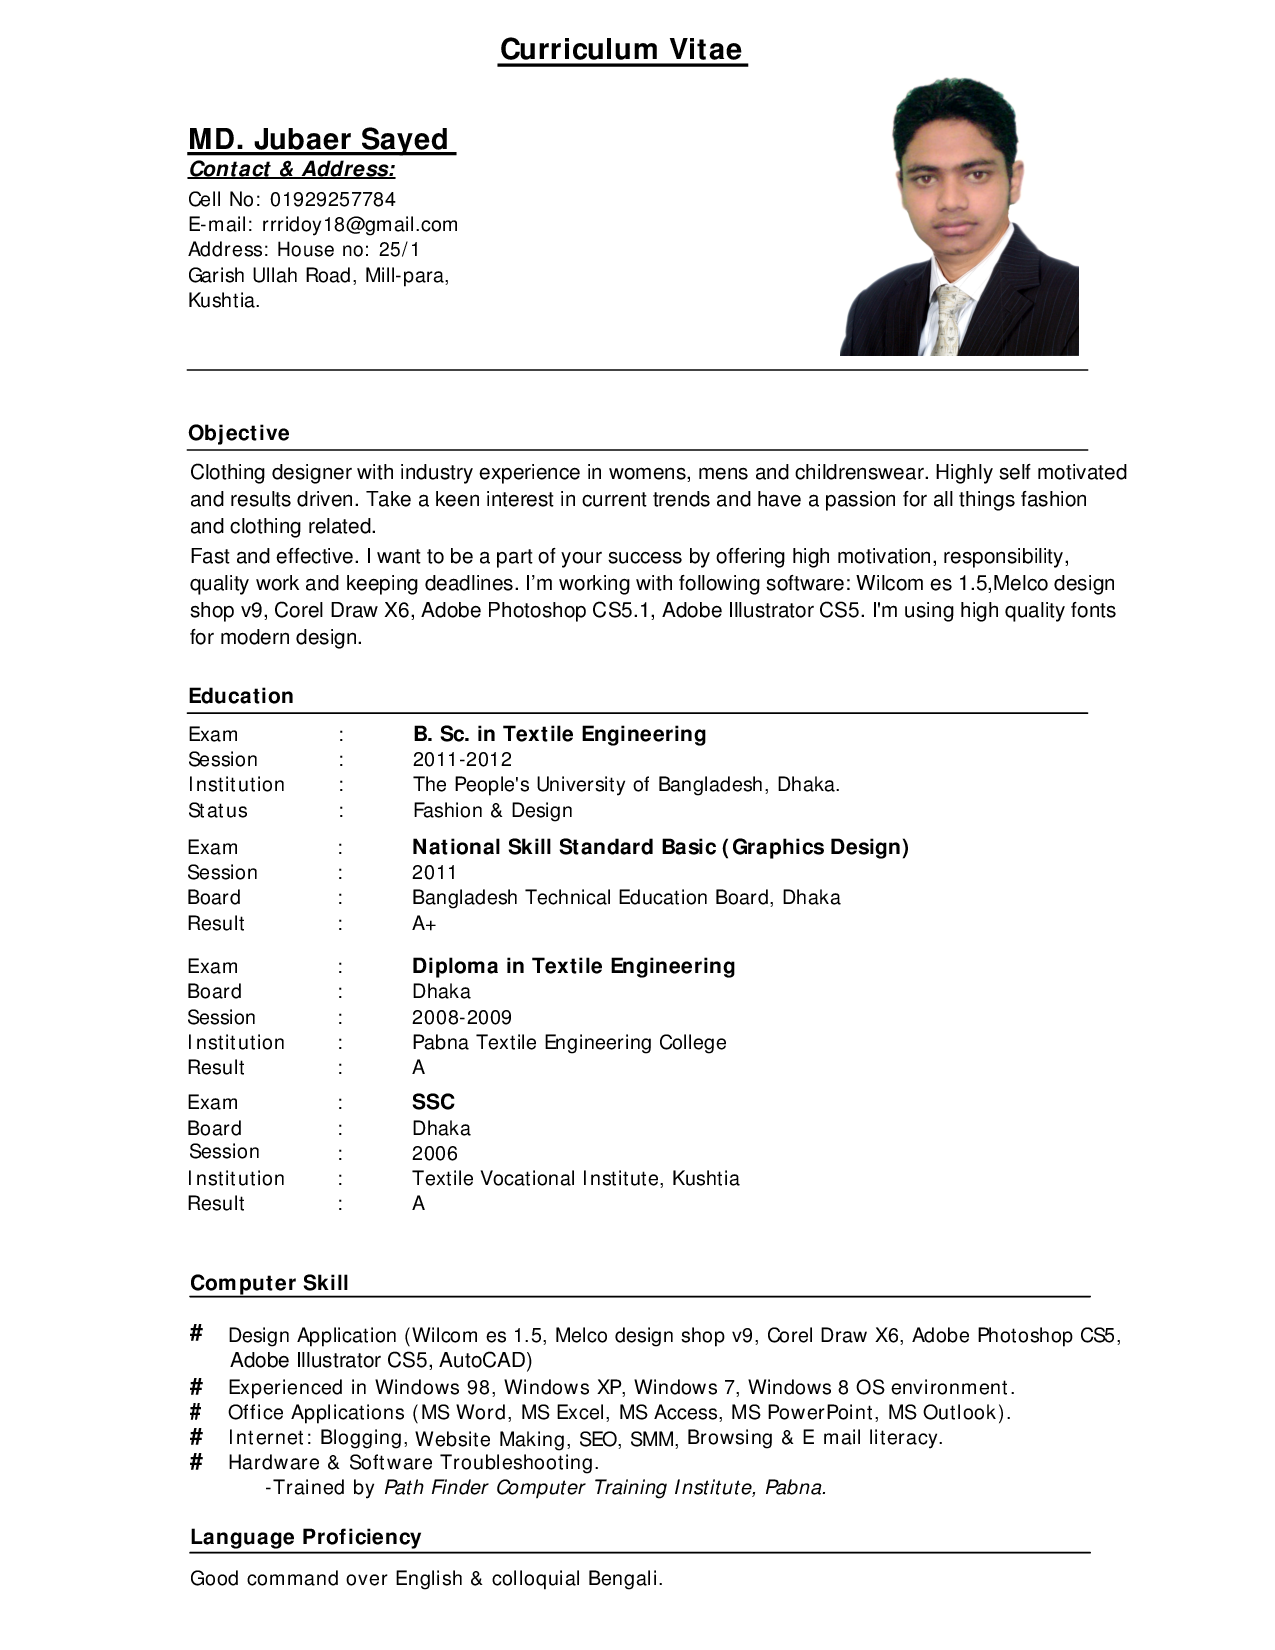 a curriculum vitae sample by few tips on writing a perfect curriculum vitae